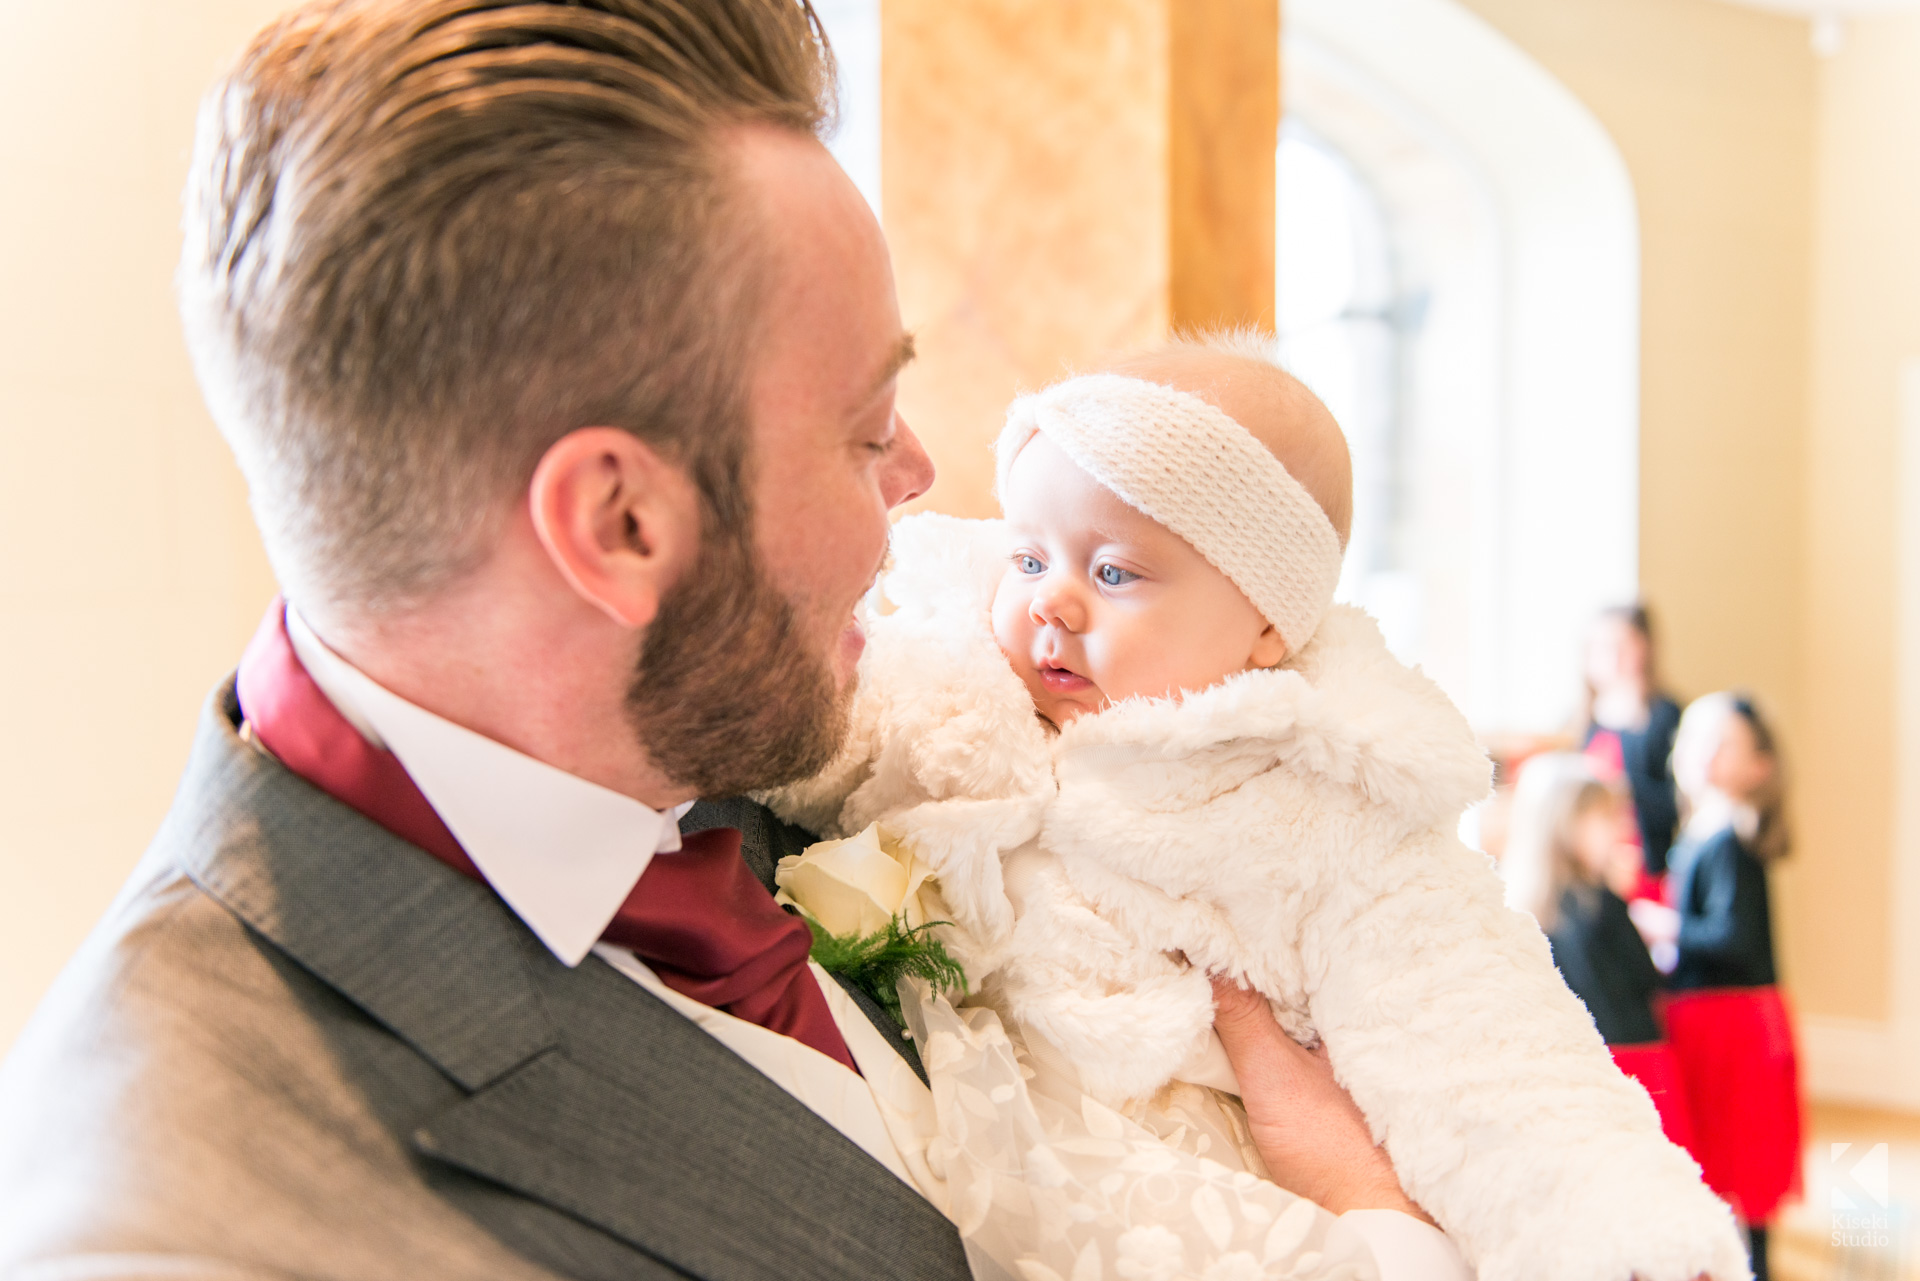 NYE Wedding at Ripley Castle - Newborn baby looking cute